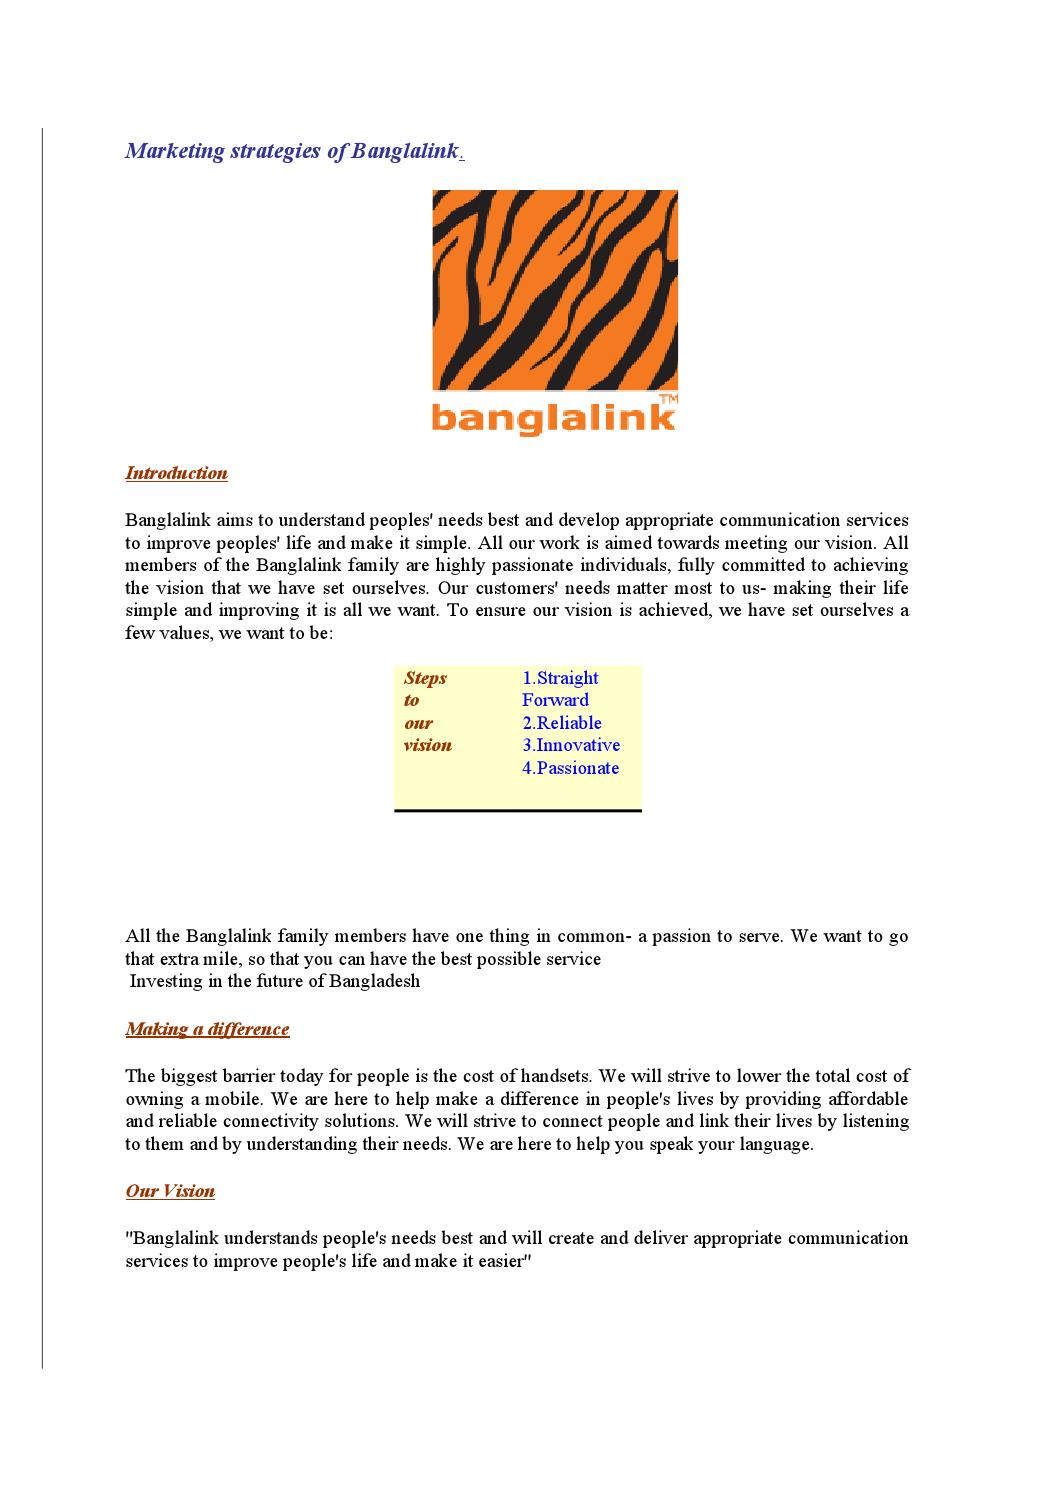 Banglalink Marketing Plan